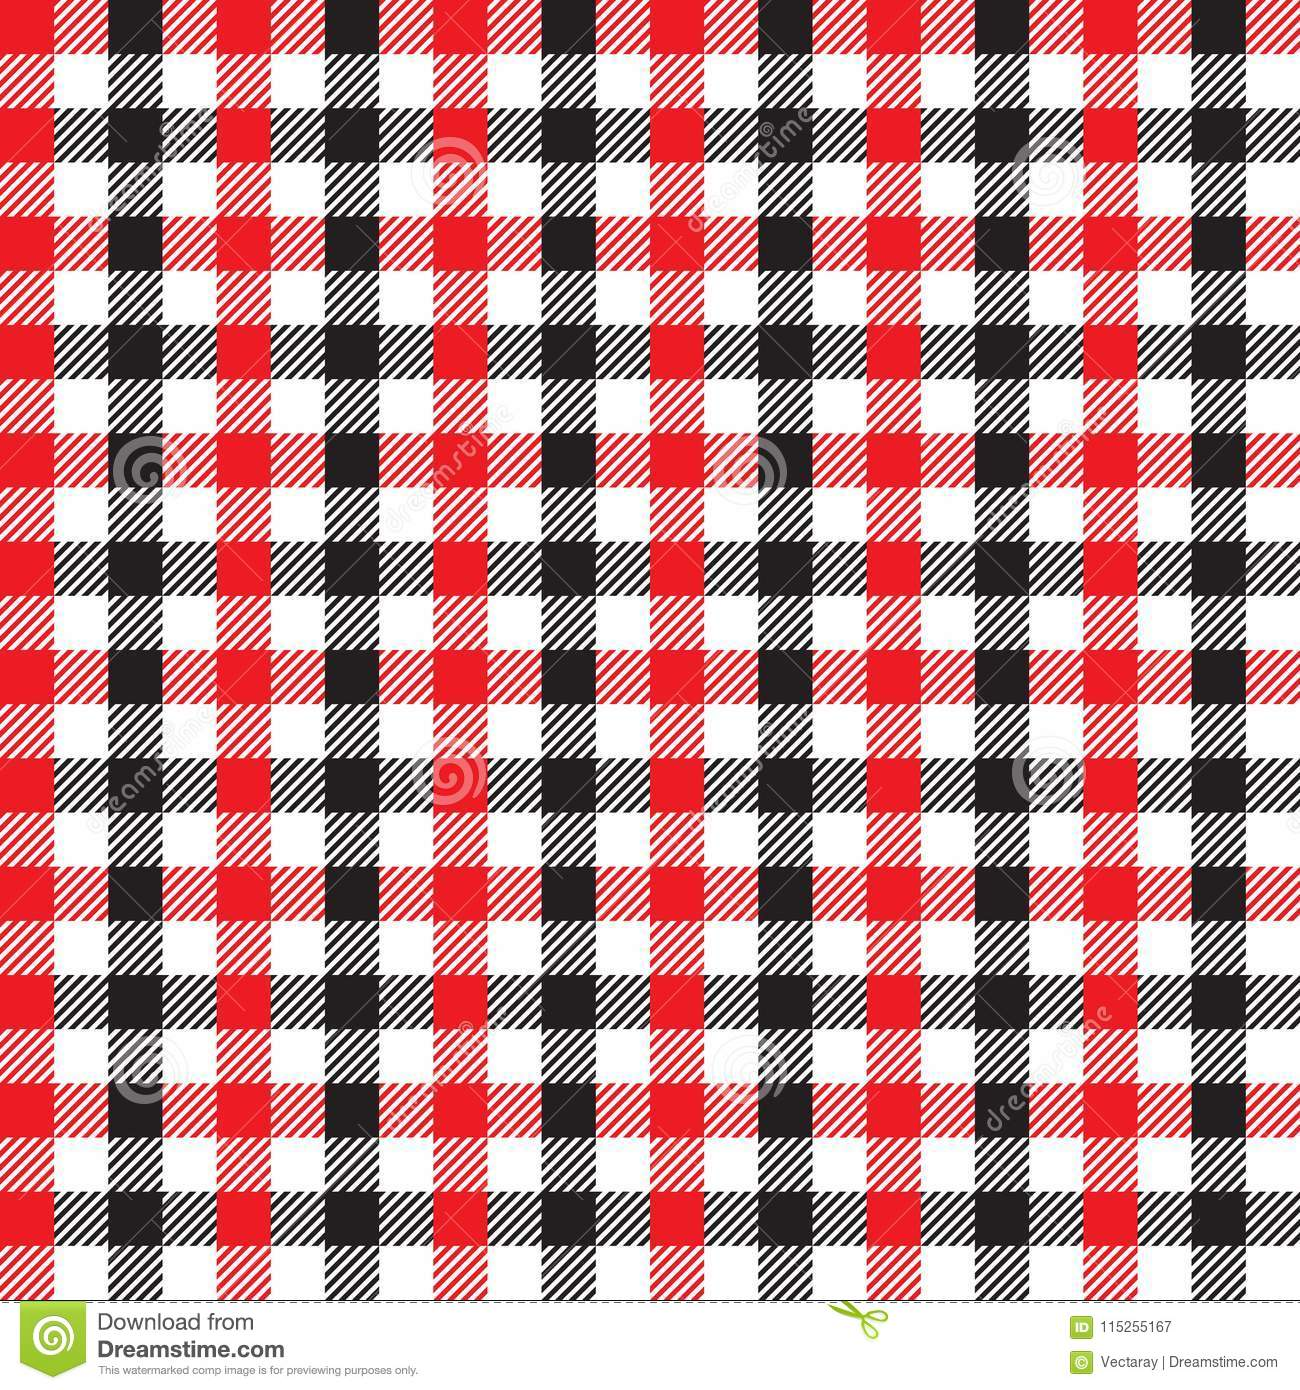 Seamless Black And Red Checkered Fabric Pattern Background Texture